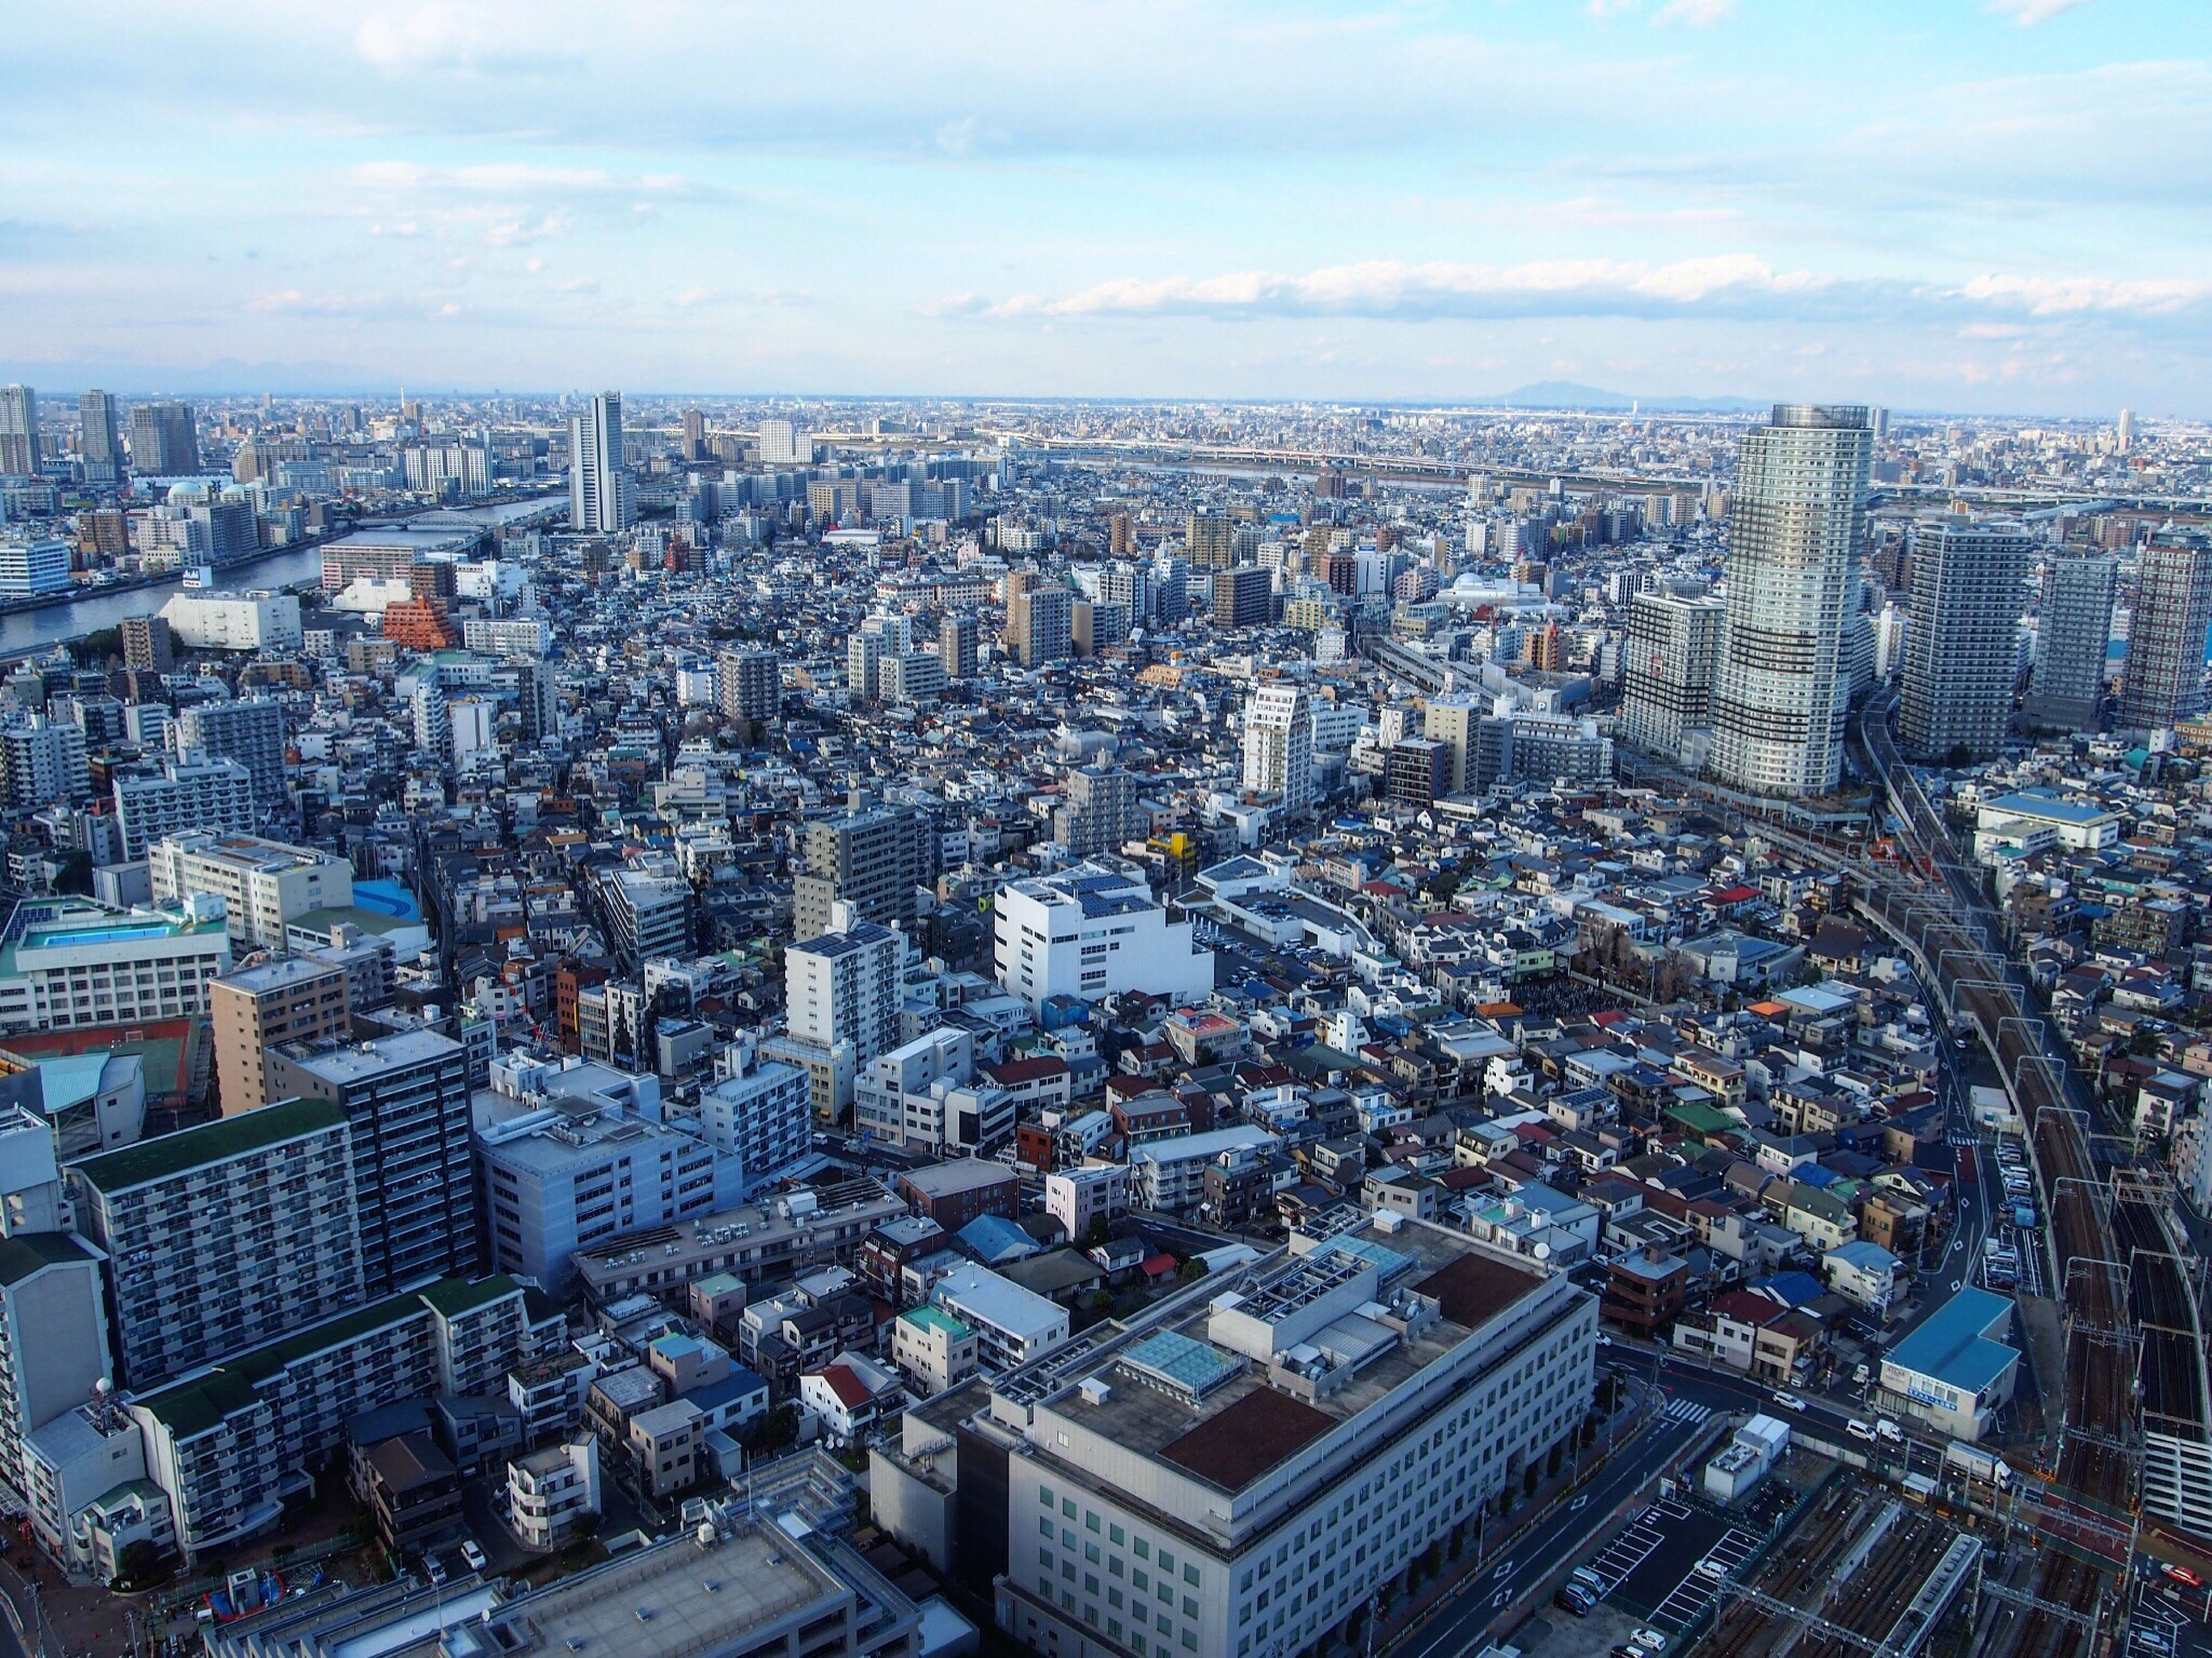 cityscape, city, building exterior, architecture, built structure, crowded, high angle view, skyscraper, residential district, tower, aerial view, sky, city life, capital cities, tall - high, modern, residential building, office building, cloud - sky, residential structure